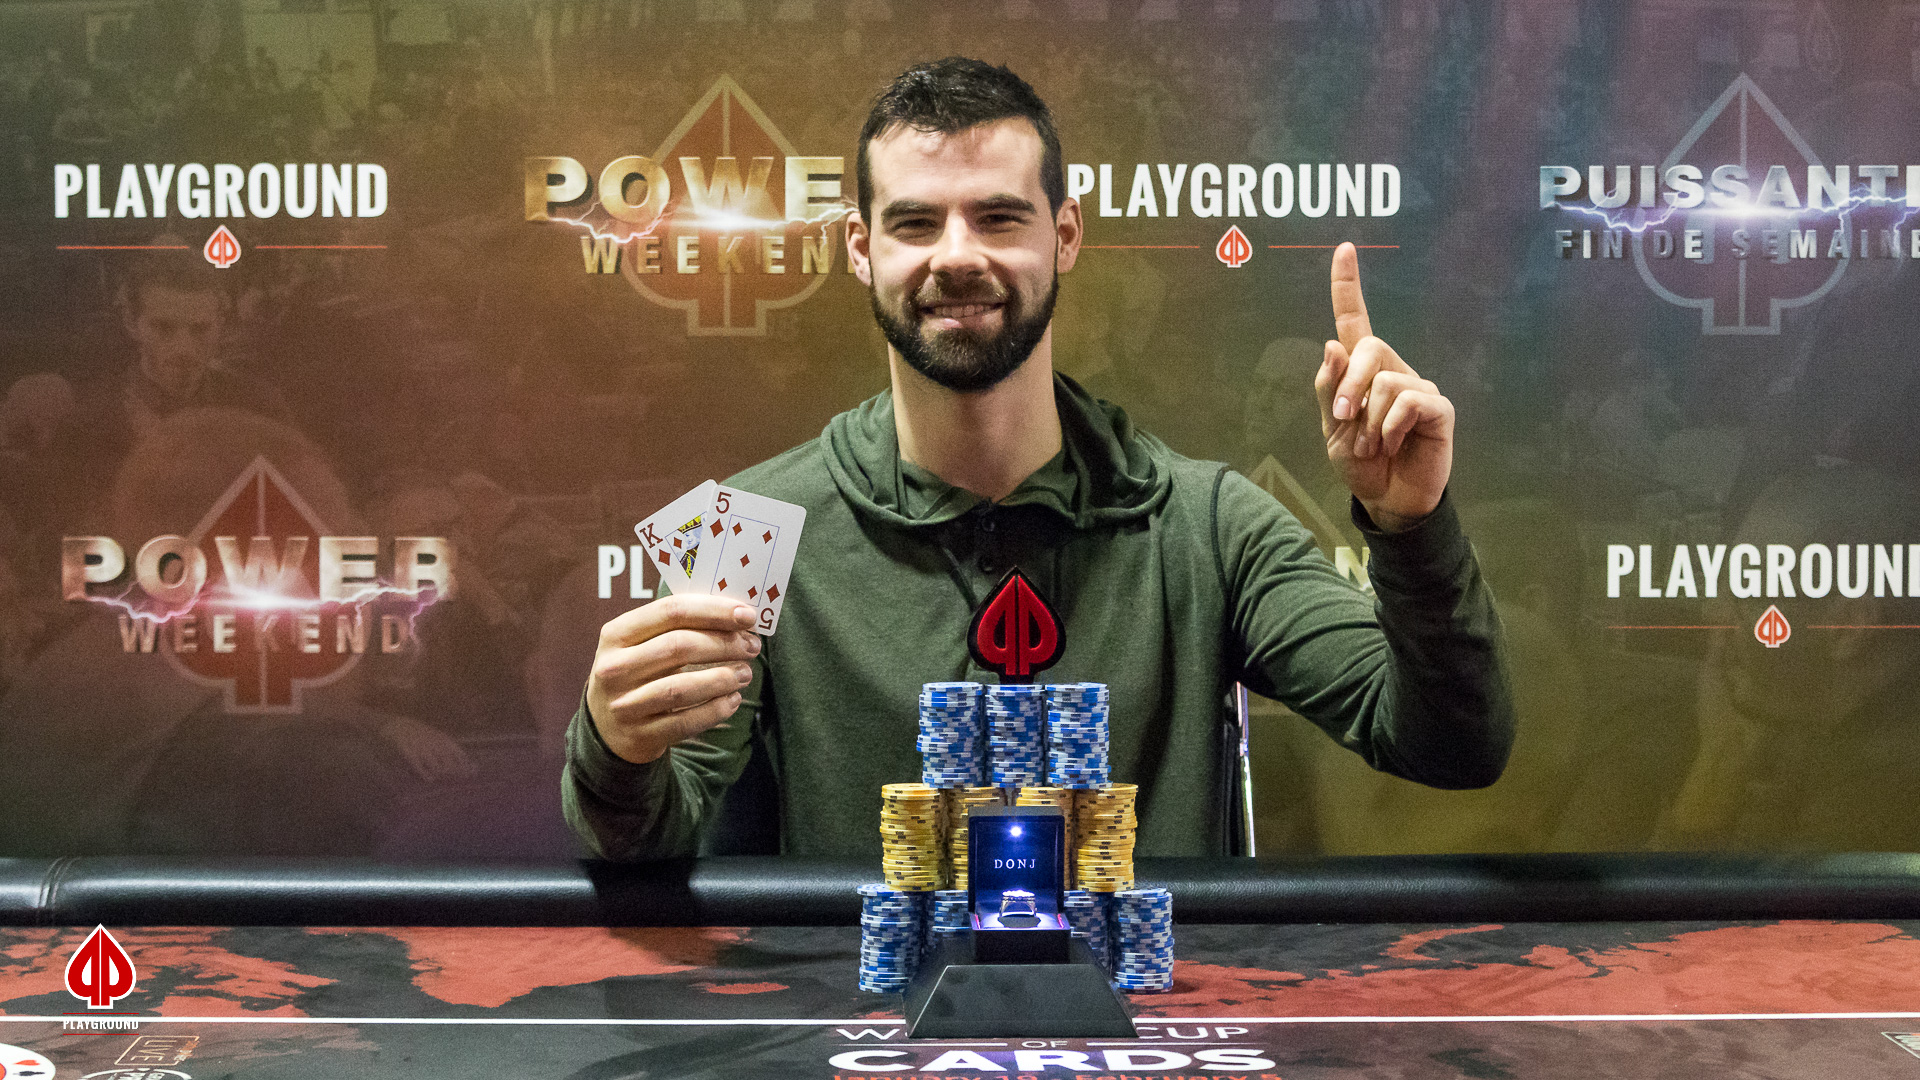 Le Champion du Re-entry: Christopher Goudreault